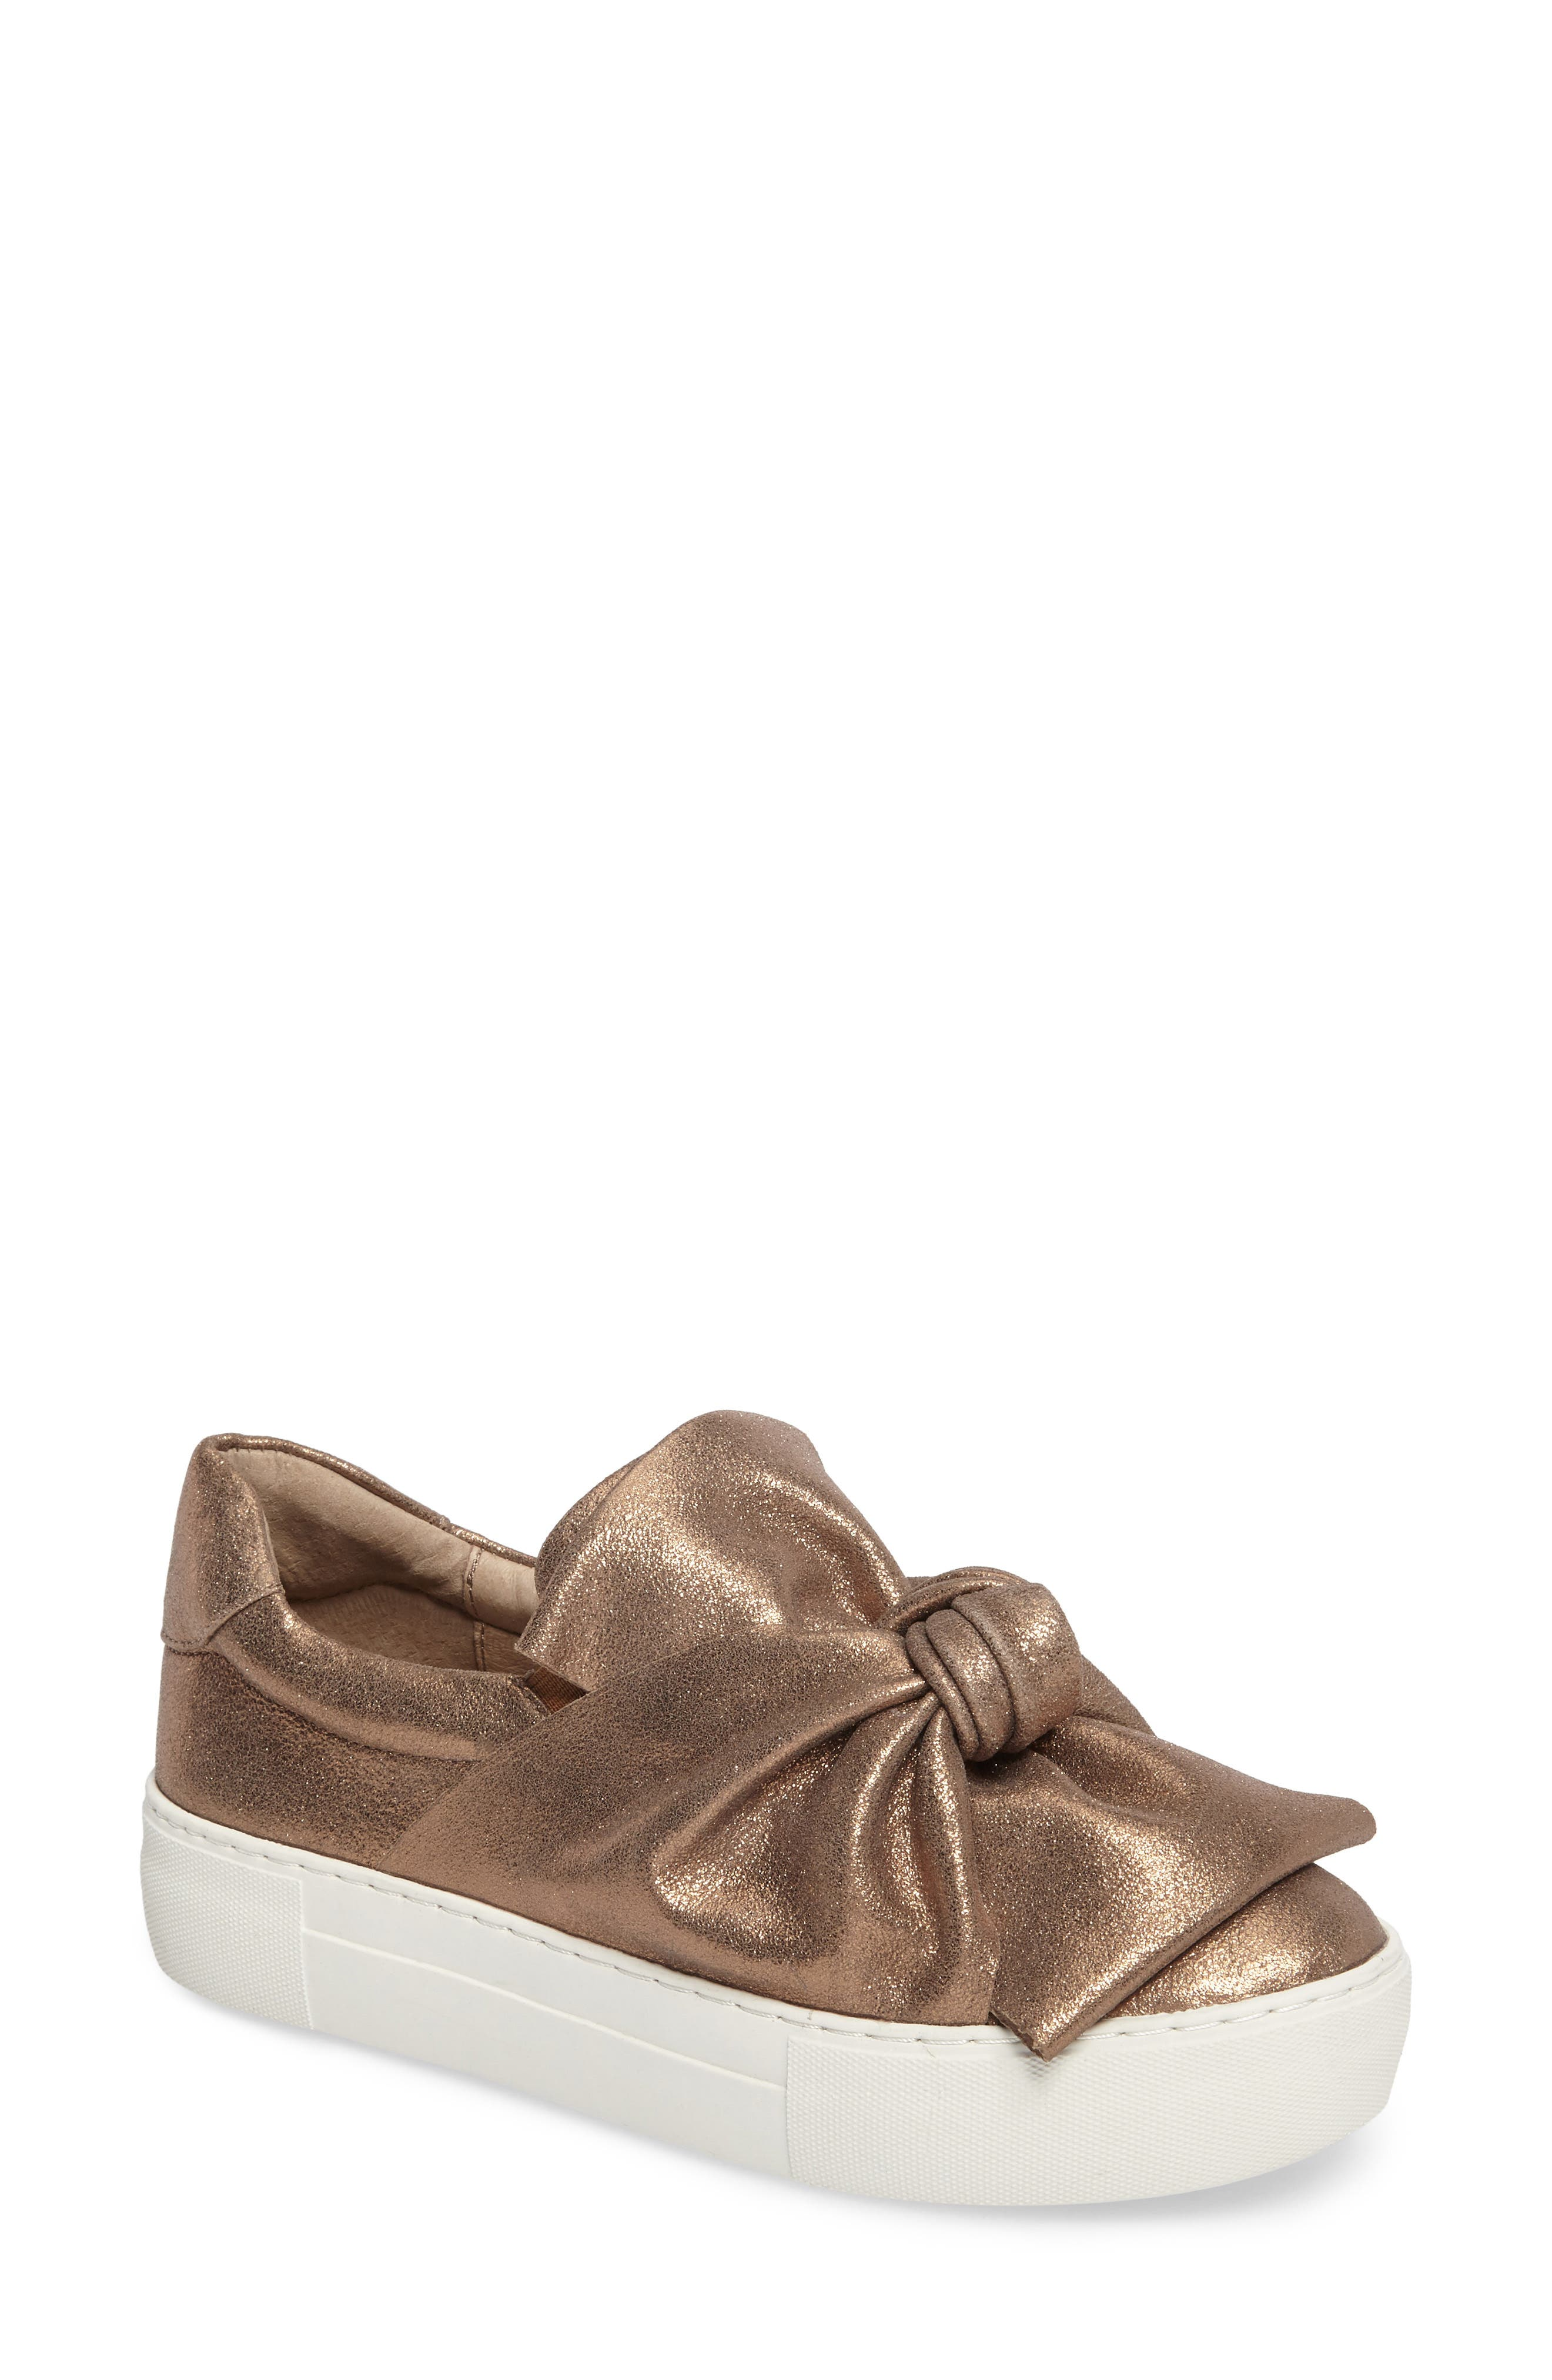 Audra Slip-On Sneaker,                         Main,                         color, Taupe Leather